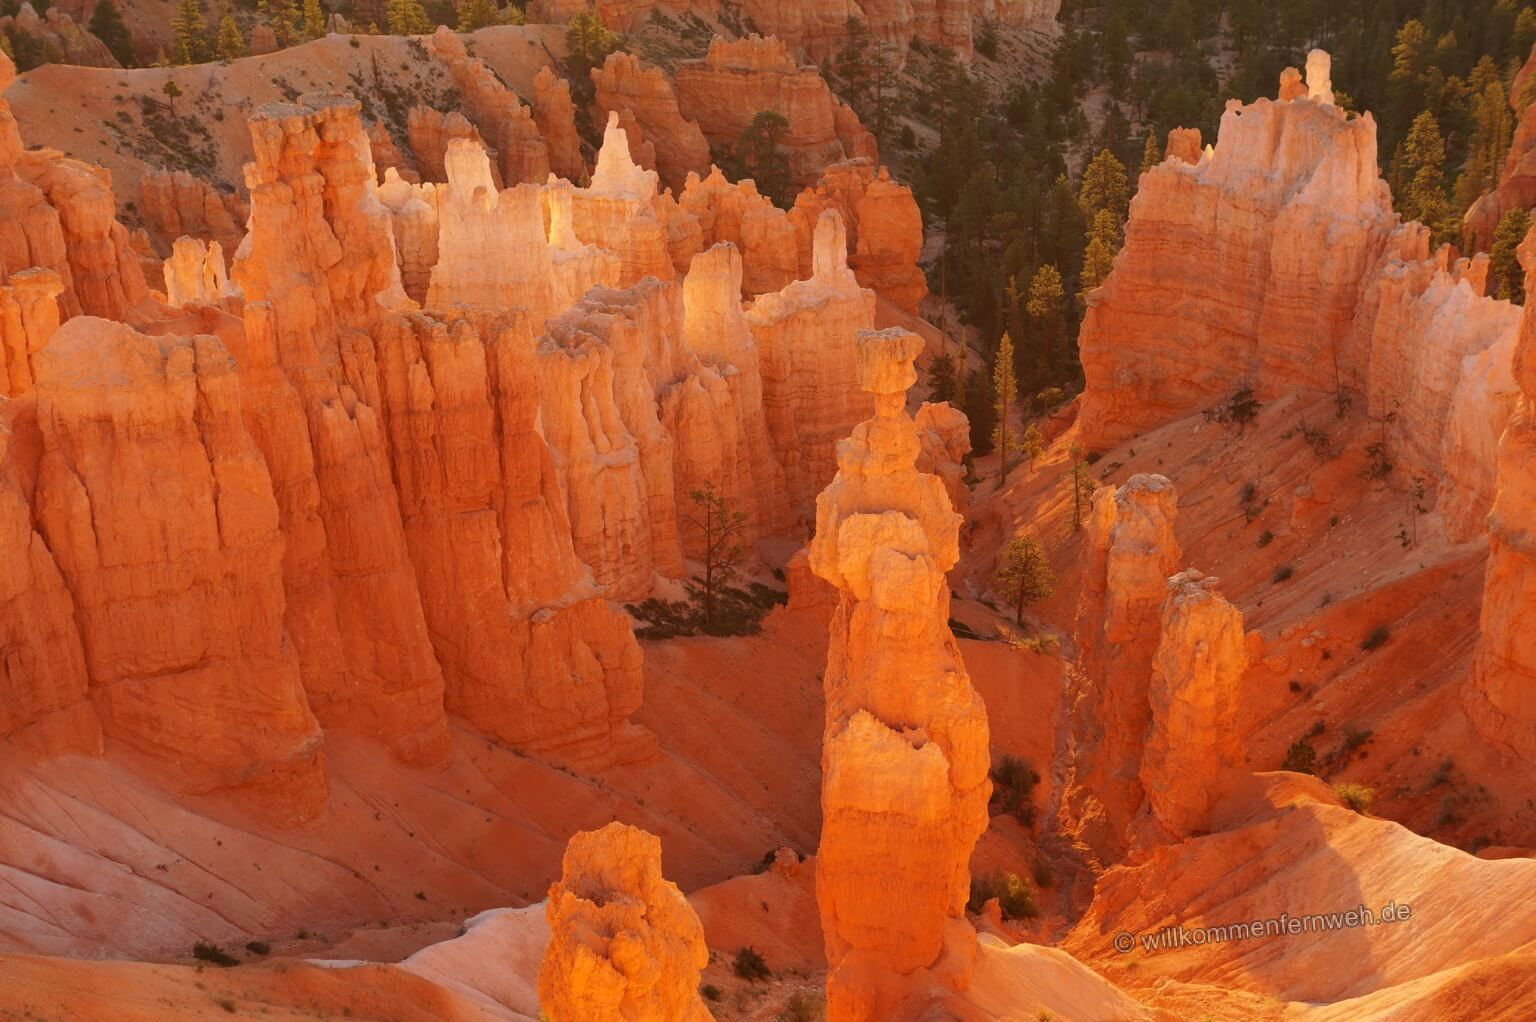 Thors Hammer, Bryce Canyon National Park